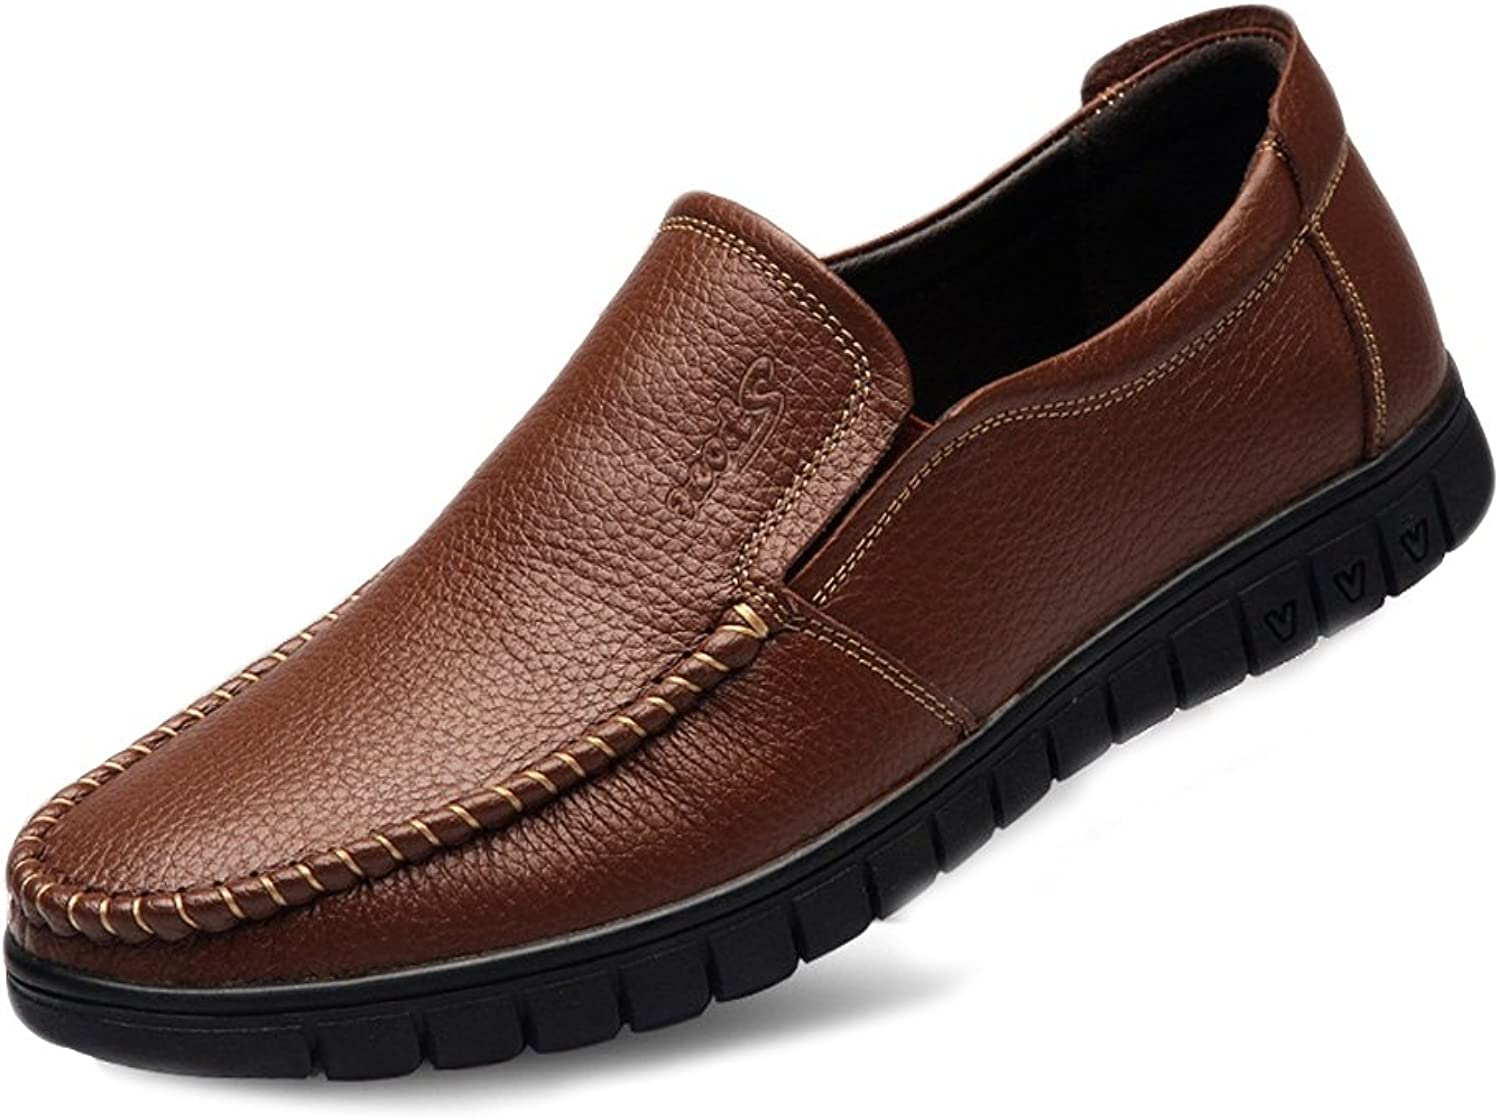 CHENXD shoes, Men's Classic Genuine Leather shoes Slip-on Flat Soft Sole Loafer (Perforation Optional)